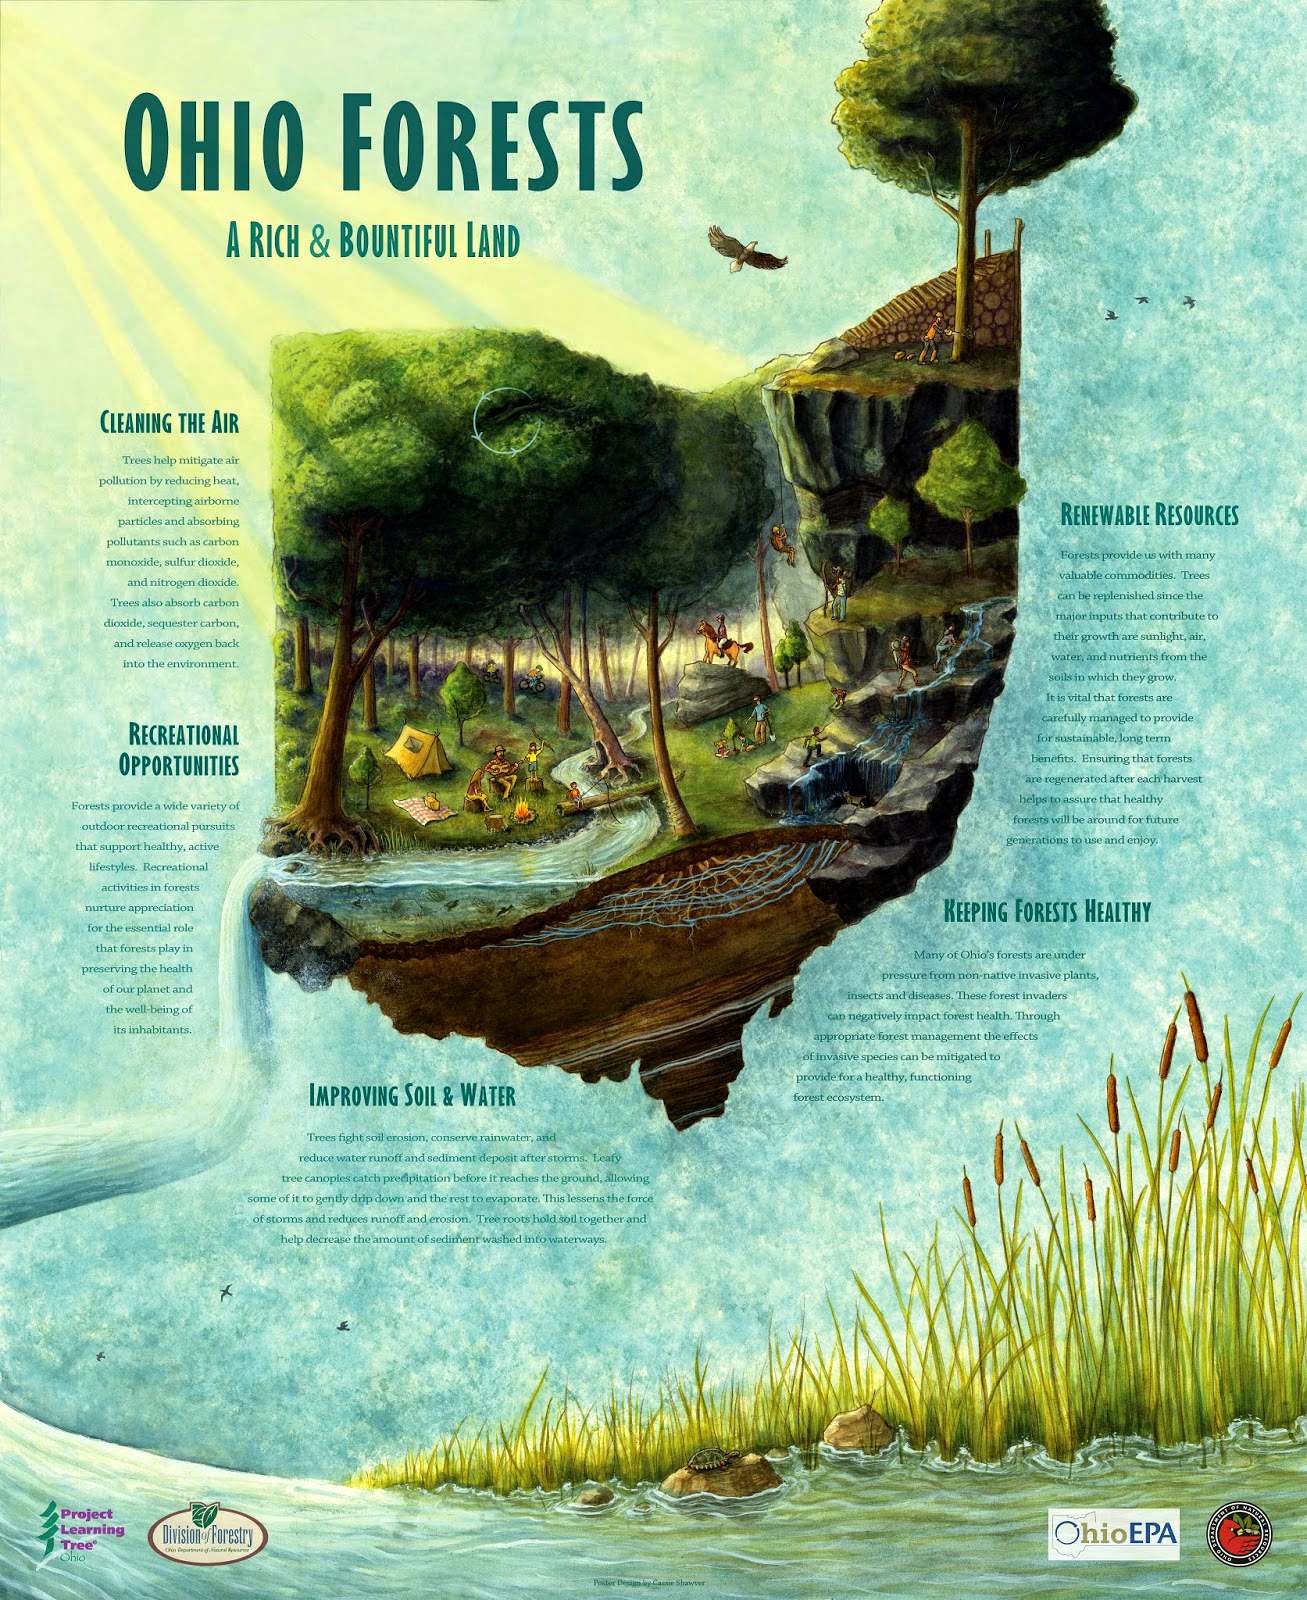 Ohio Forests Benefits